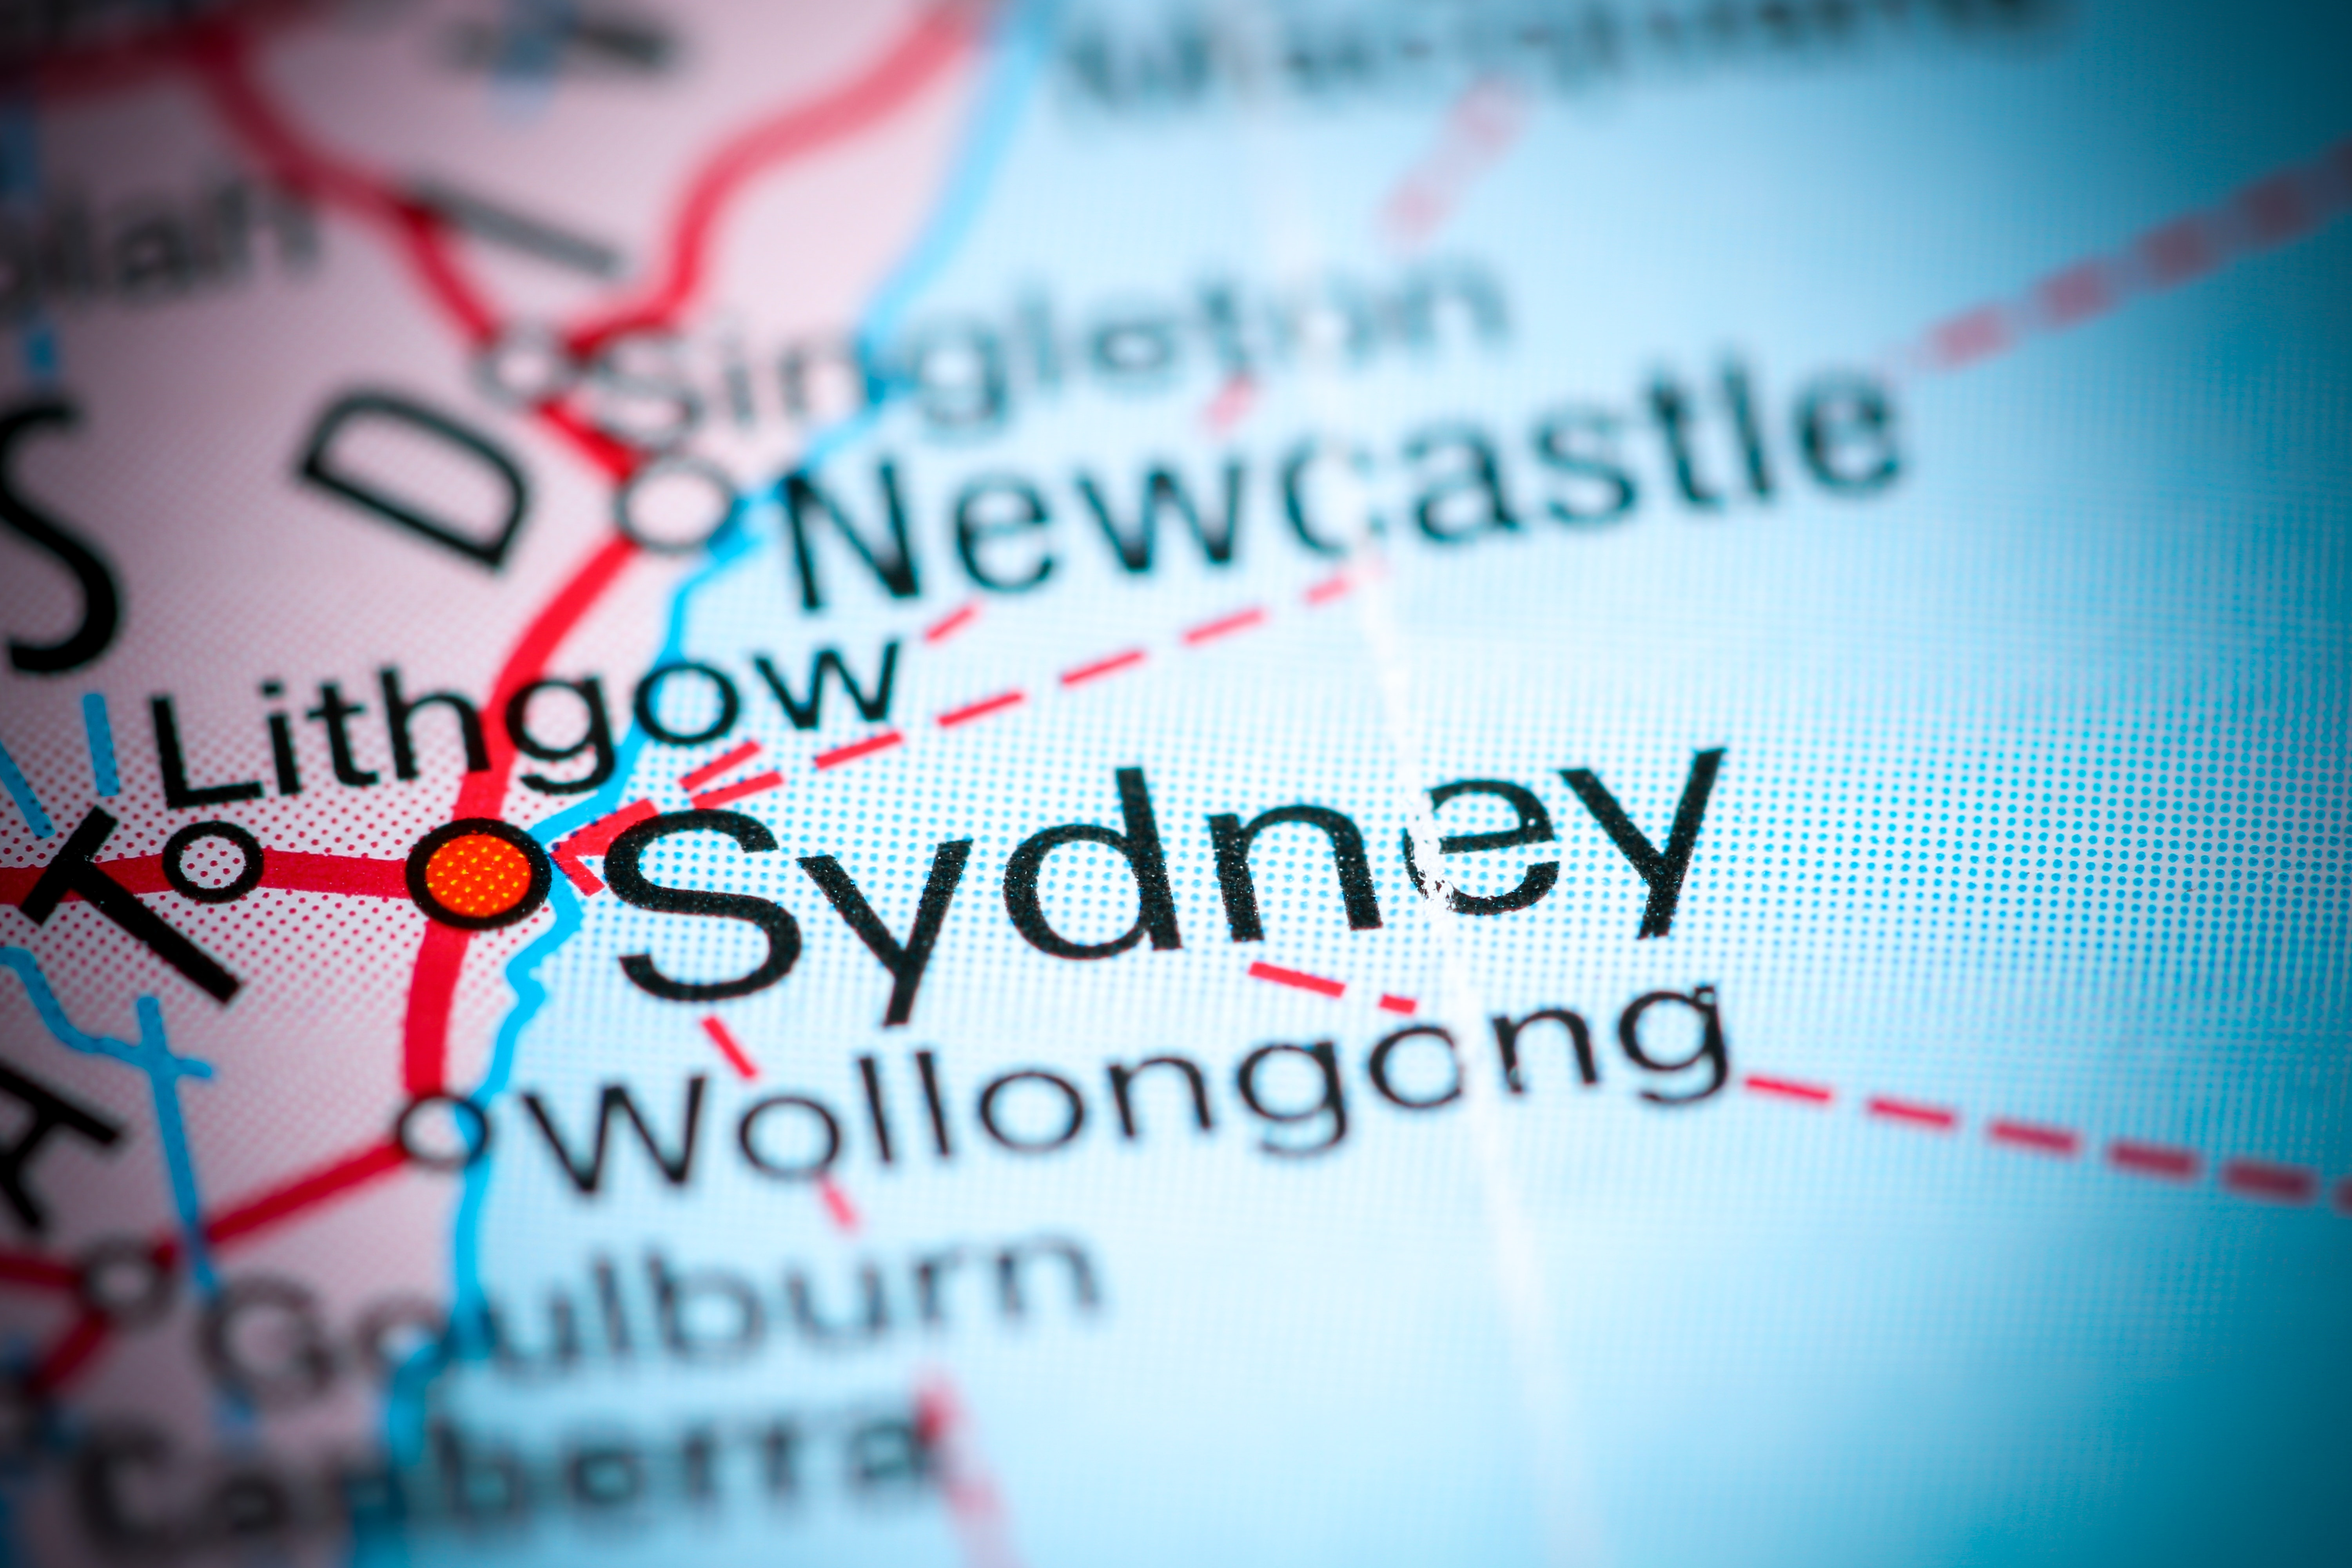 Two ways to fund NSW election promises as property prices crash